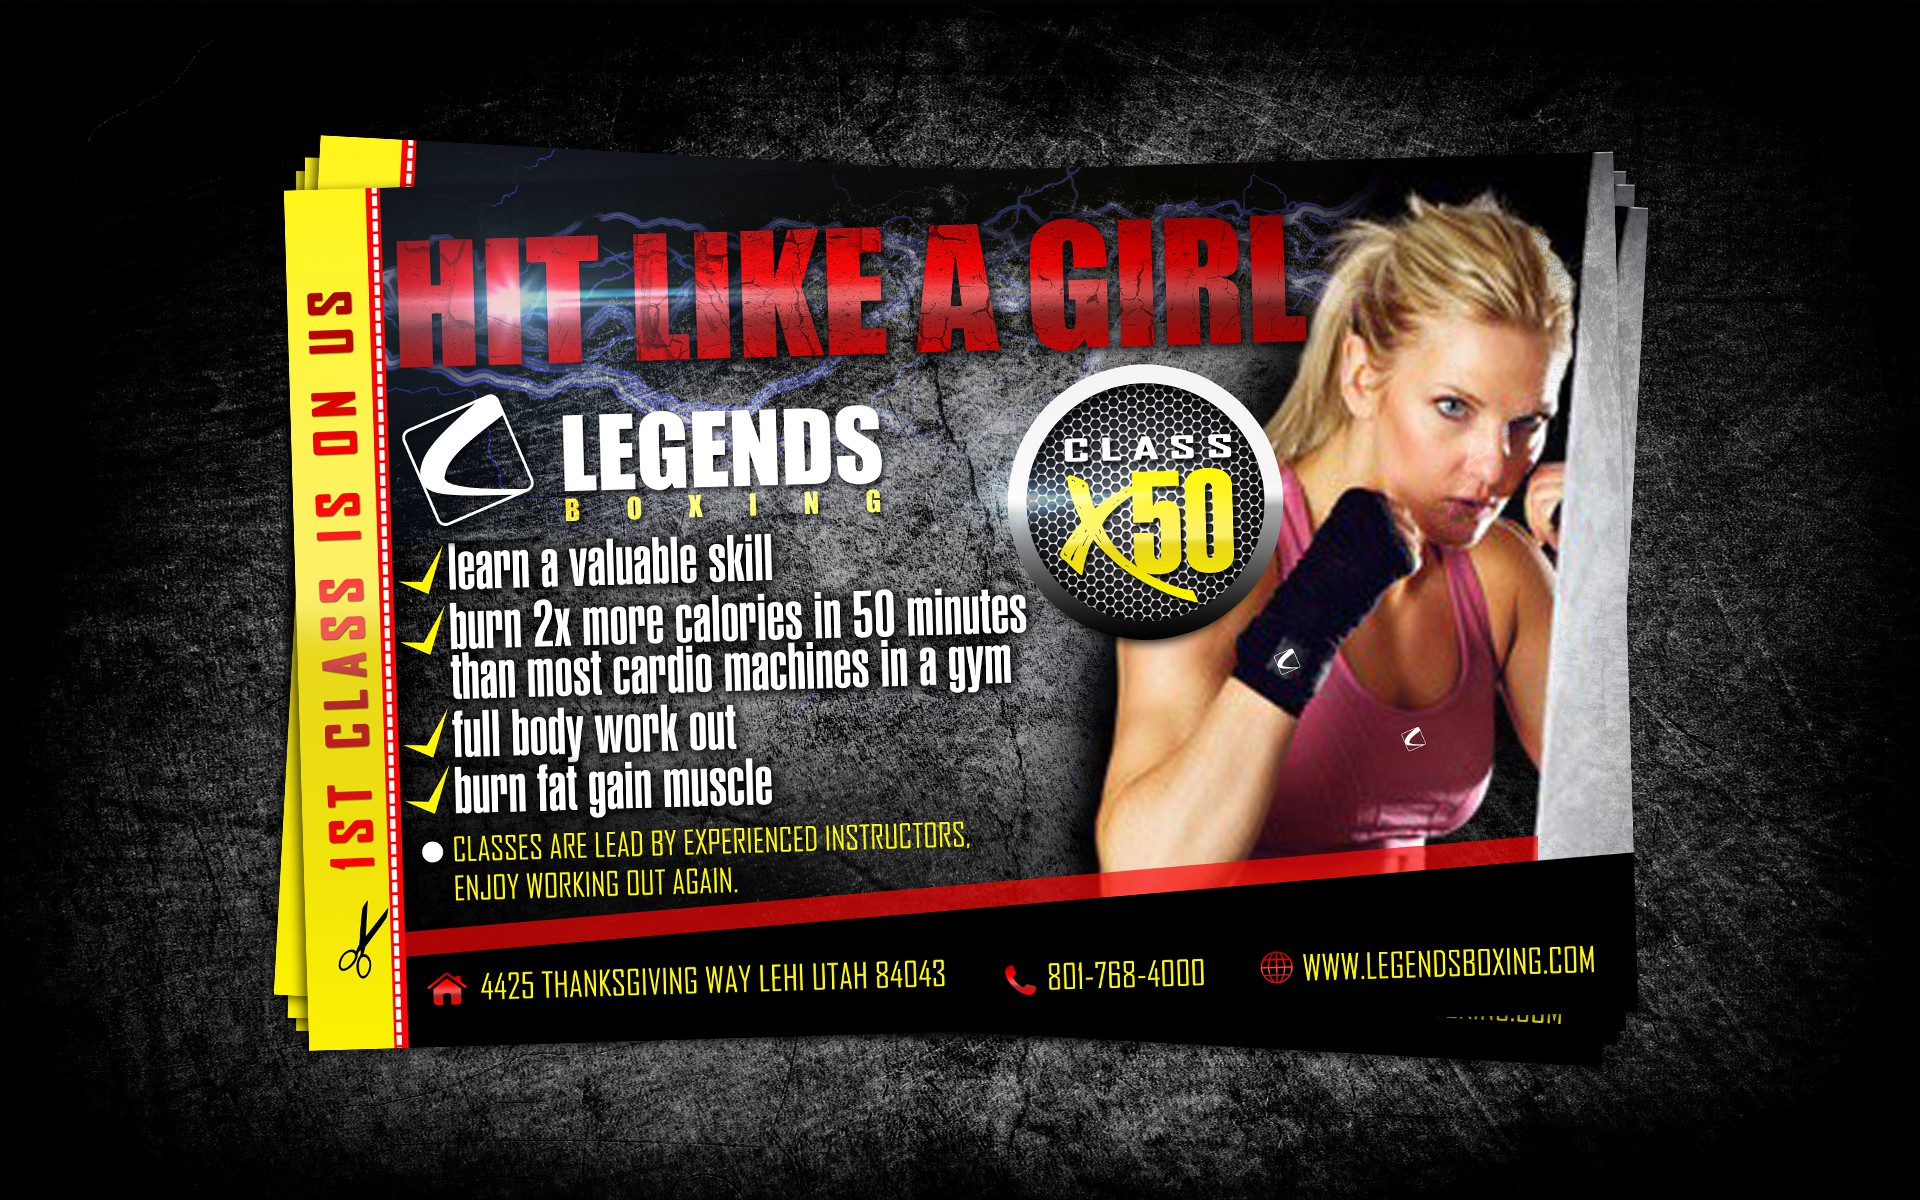 Create the next postcard or flyer for Legends Boxing